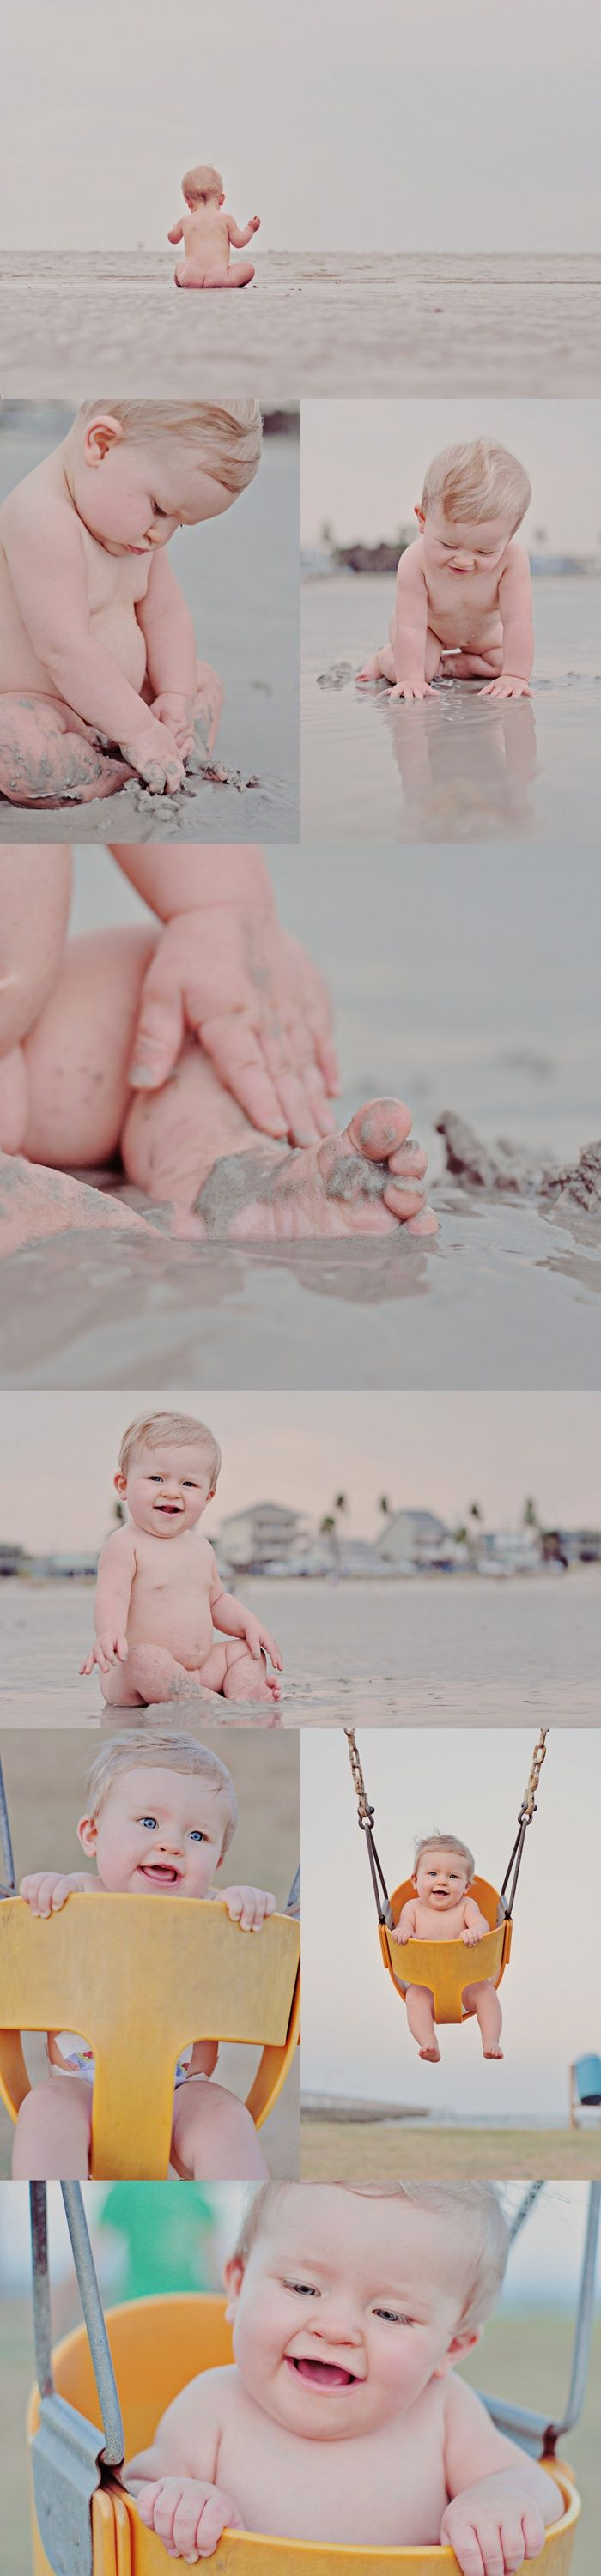 Theres something about a little cubby nudie baby at the beach!